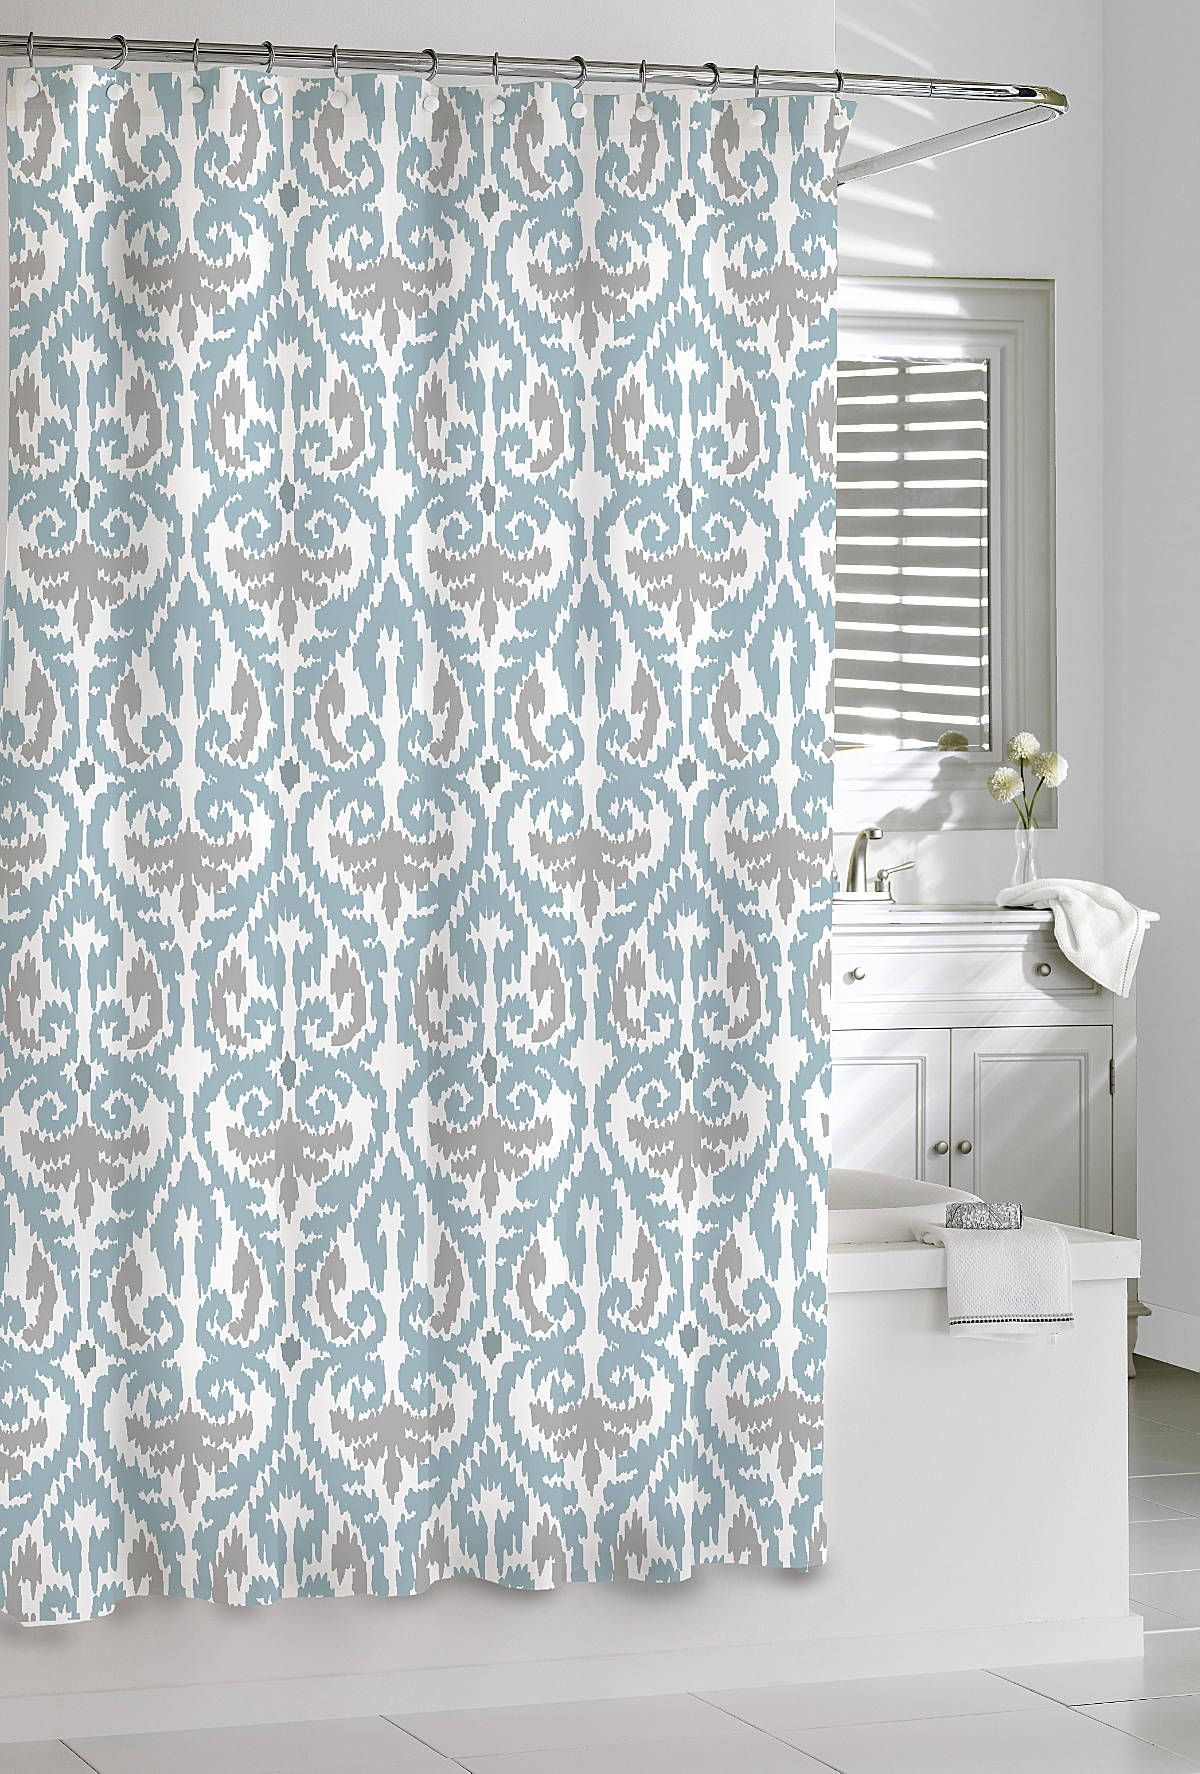 Luxury Shower Curtains Scrolled Ikat Shower Curtain By Kassatex